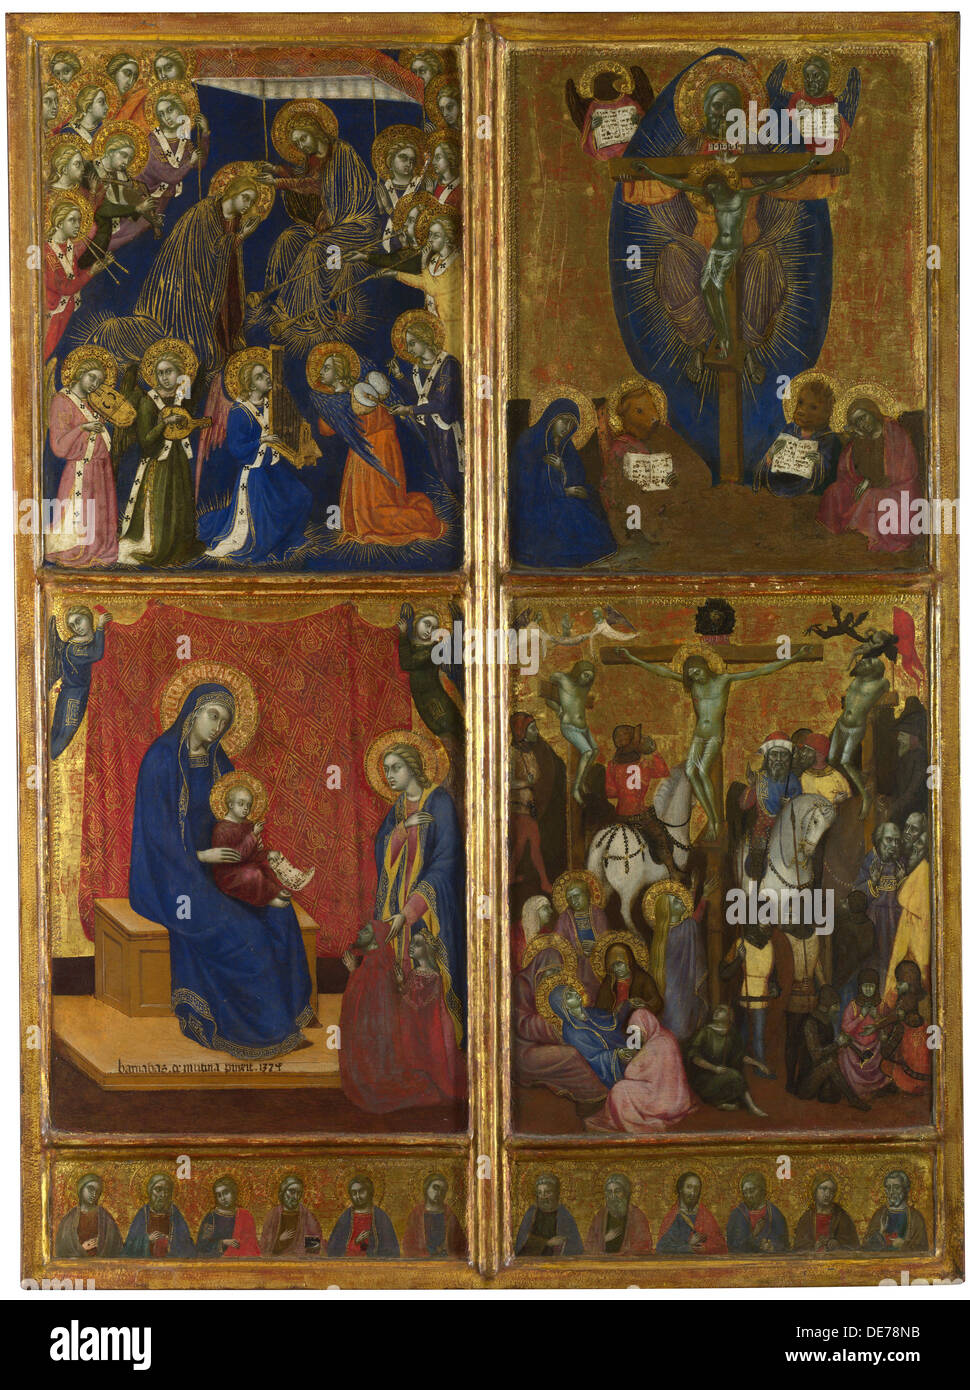 The Coronation of the Virgin. The Trinity. The Virgin and Child with Donors. The Crucifixion. The Twelve Apostles, 1374. Artist: - Stock Image